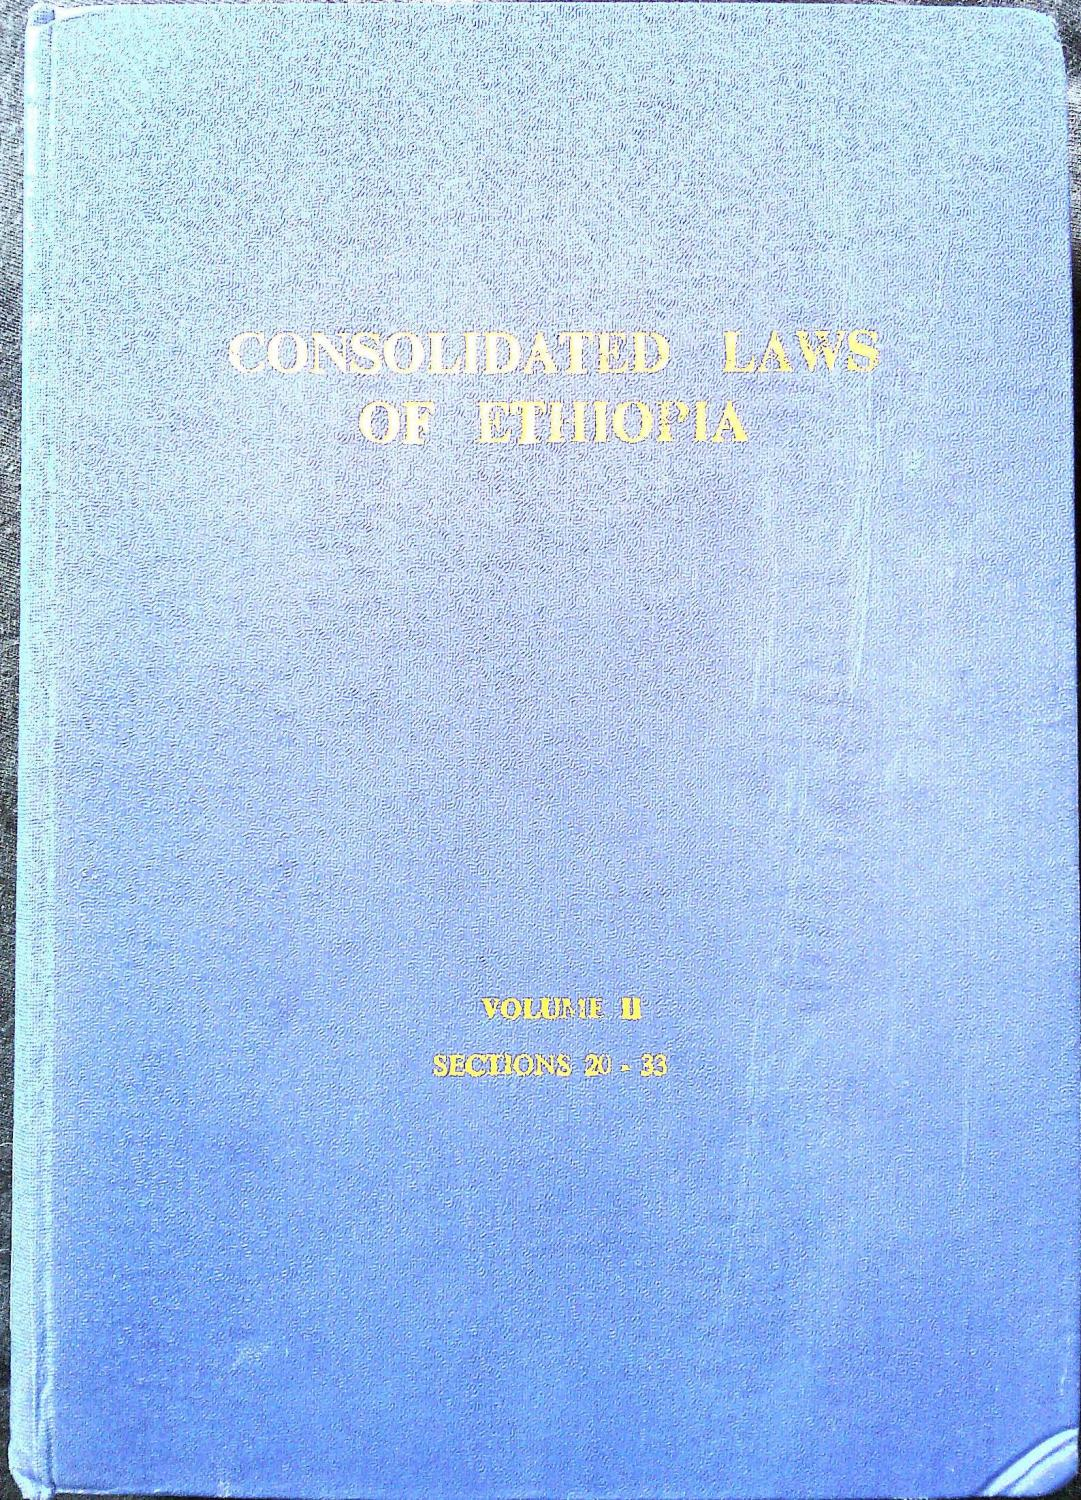 Consolidated Laws of Ethiopia Vol  II (1972) [Part 2] by